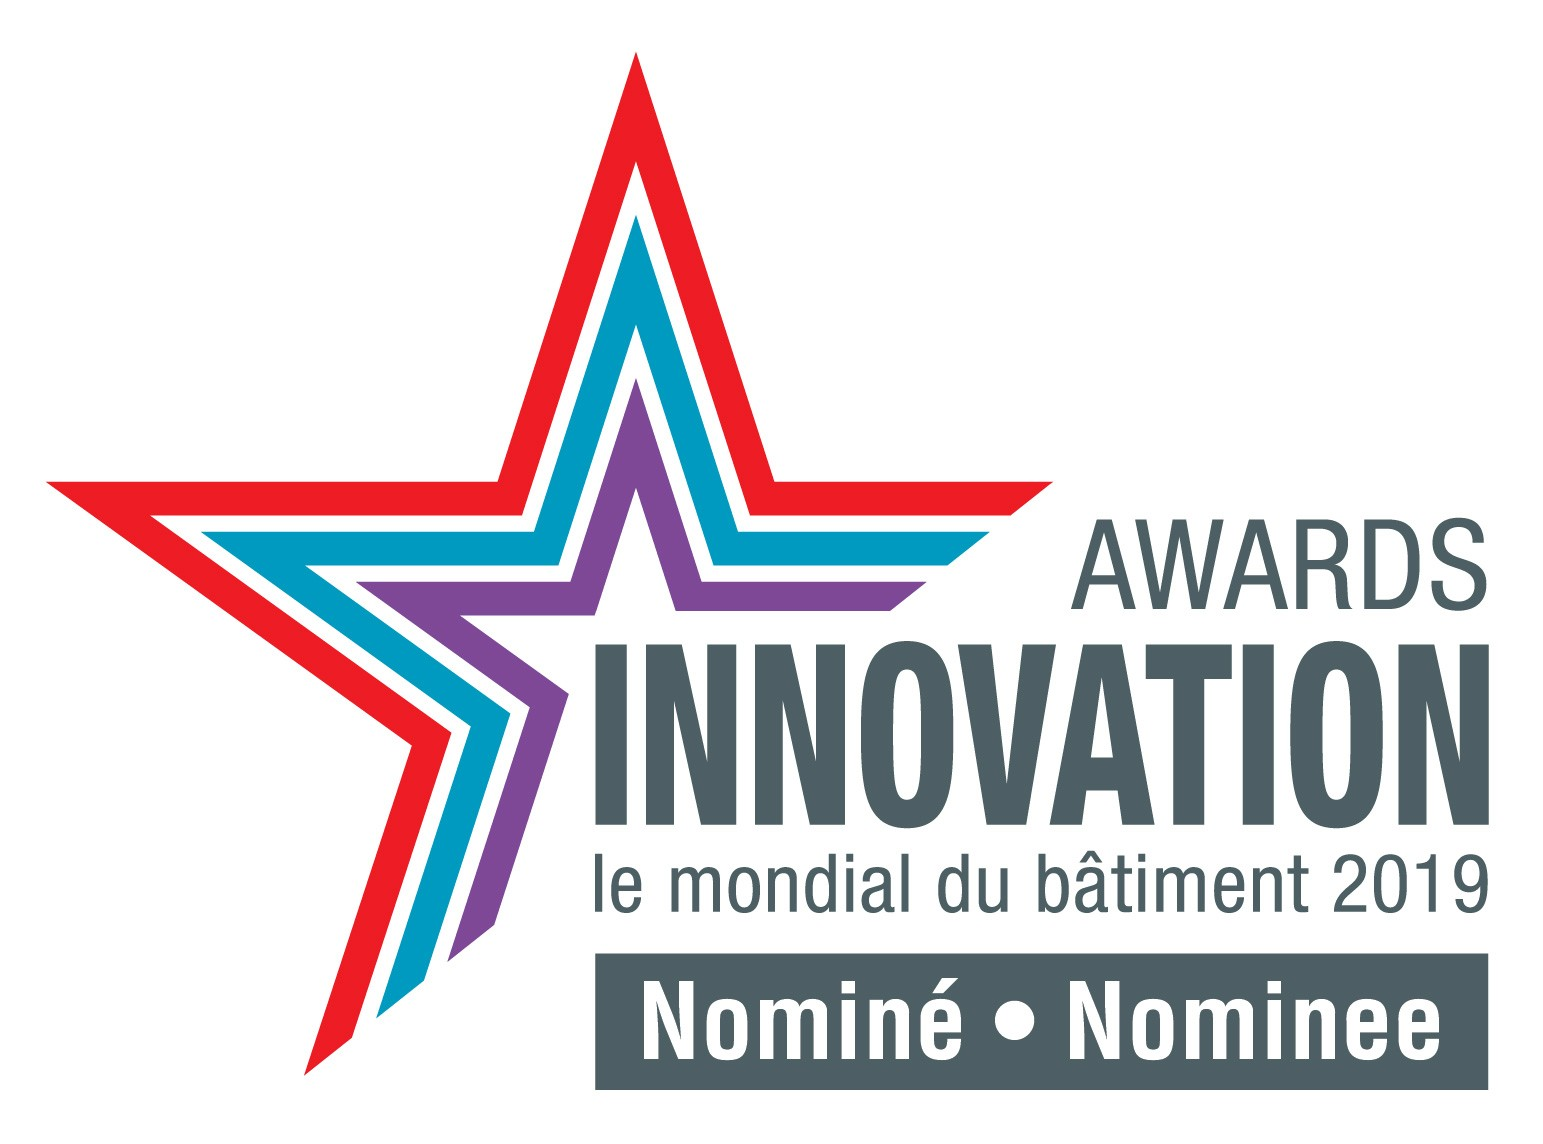 JBRB ECOWATT PR SIGFOX nominé aux AWARDS INTERCLIMA